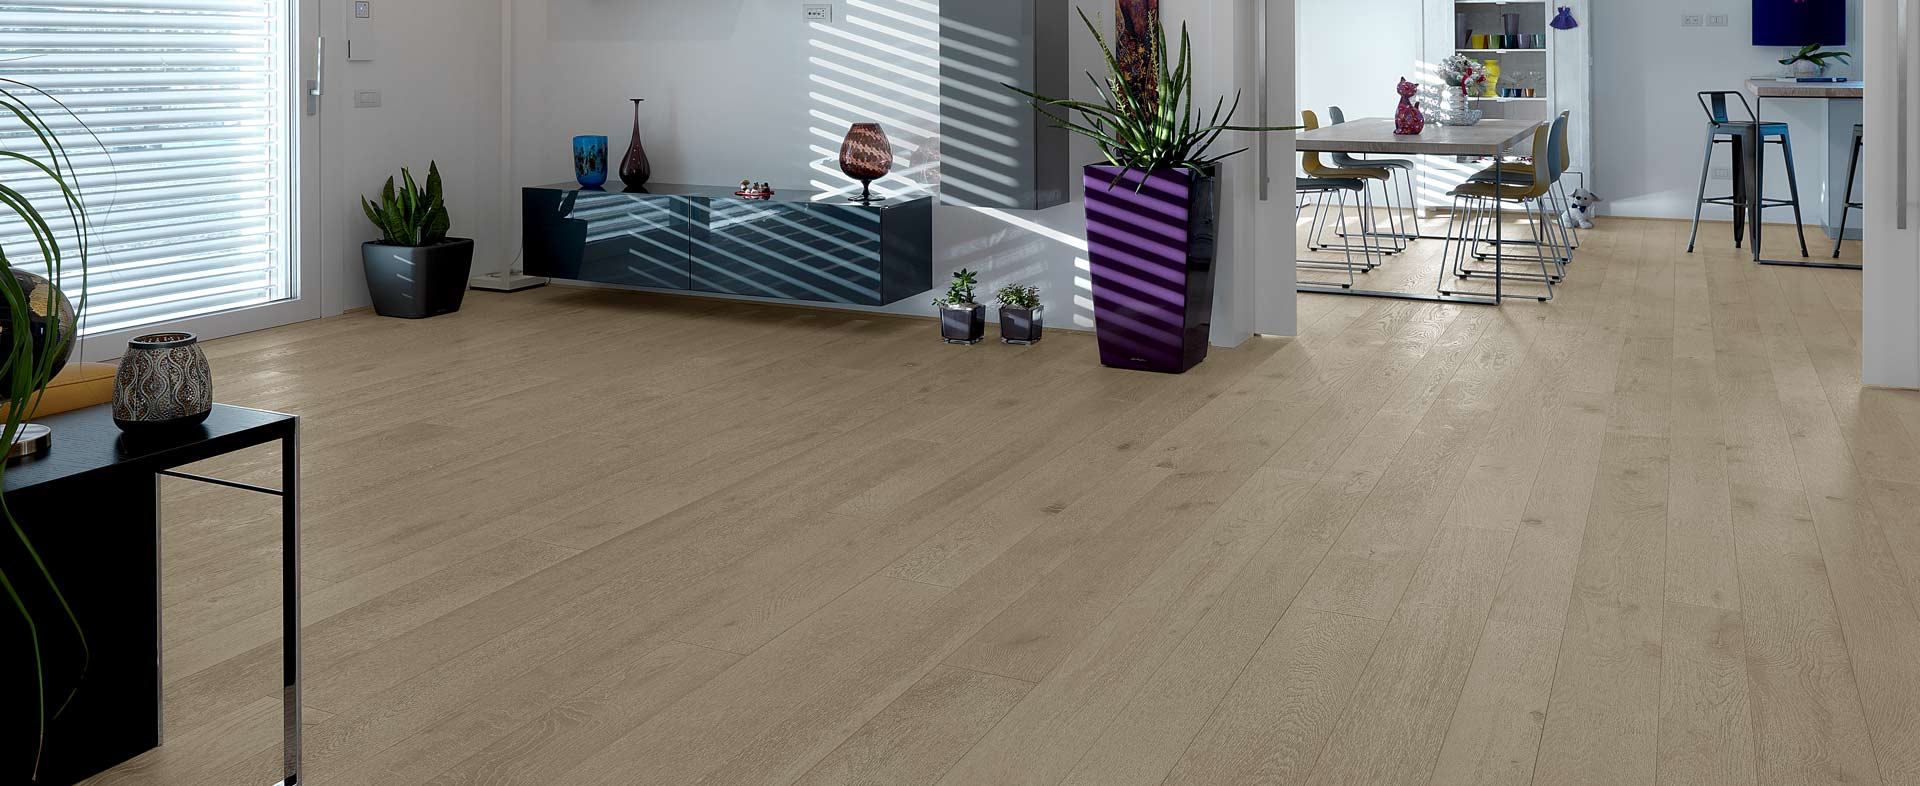 Sandblasted Rock Quercus Epoch Planks